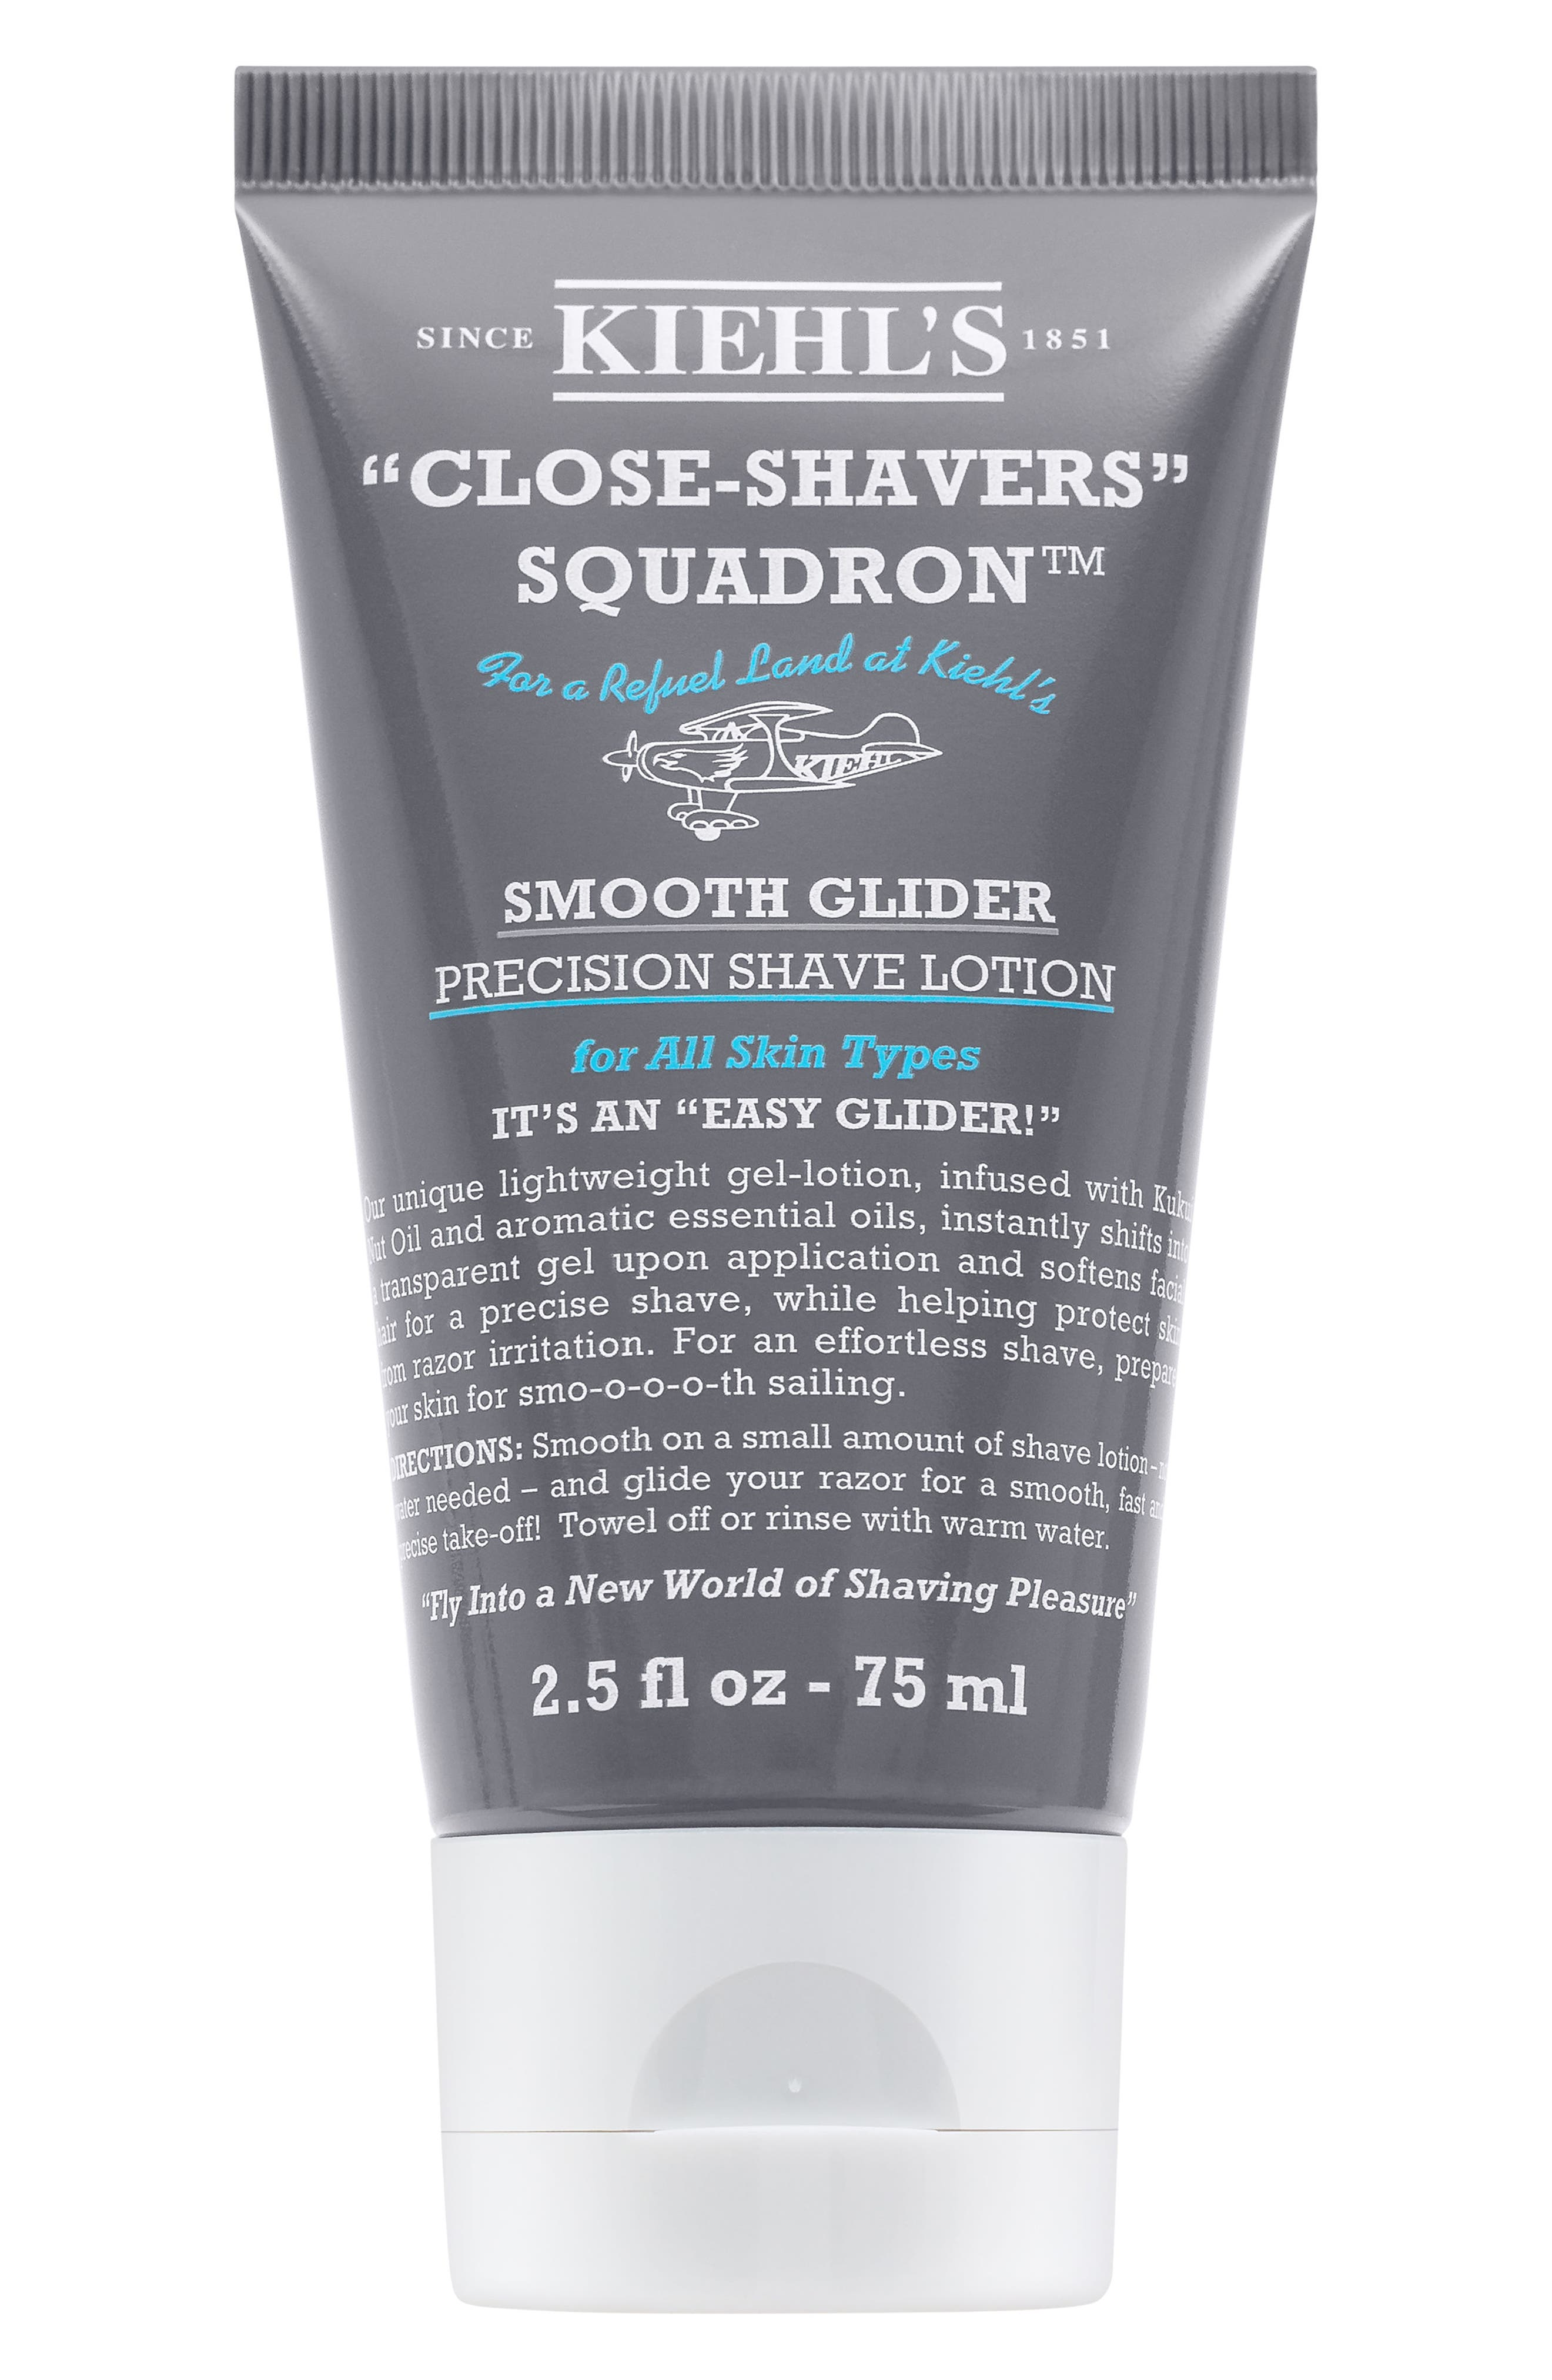 1851 Smooth Glider Shave Lotion